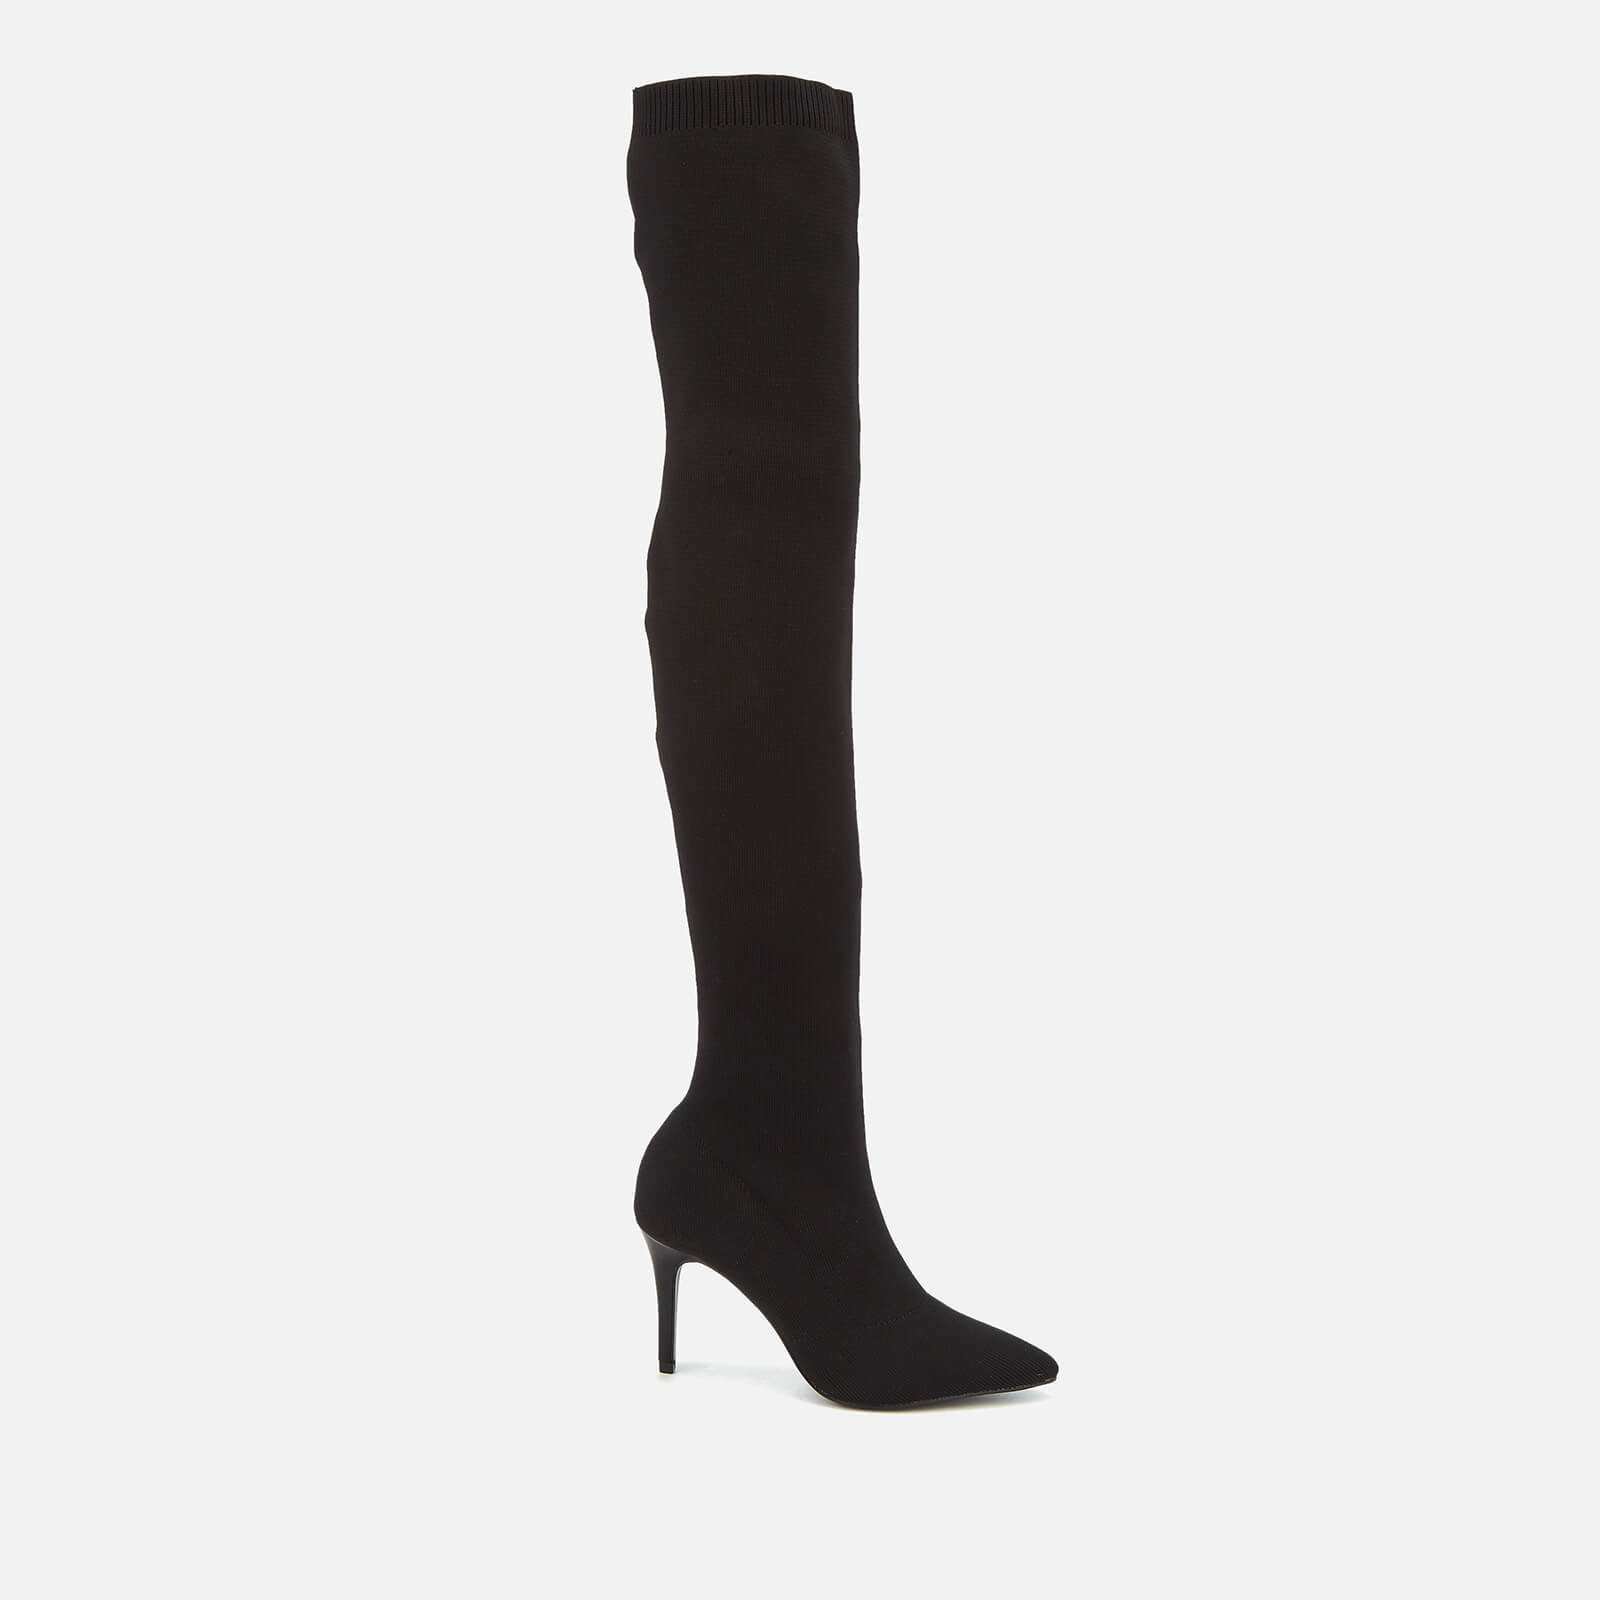 f6da8764a Carvela Women's Gasp Stretch Thigh High Heeled Boots - Black | FREE UK  Delivery | Allsole